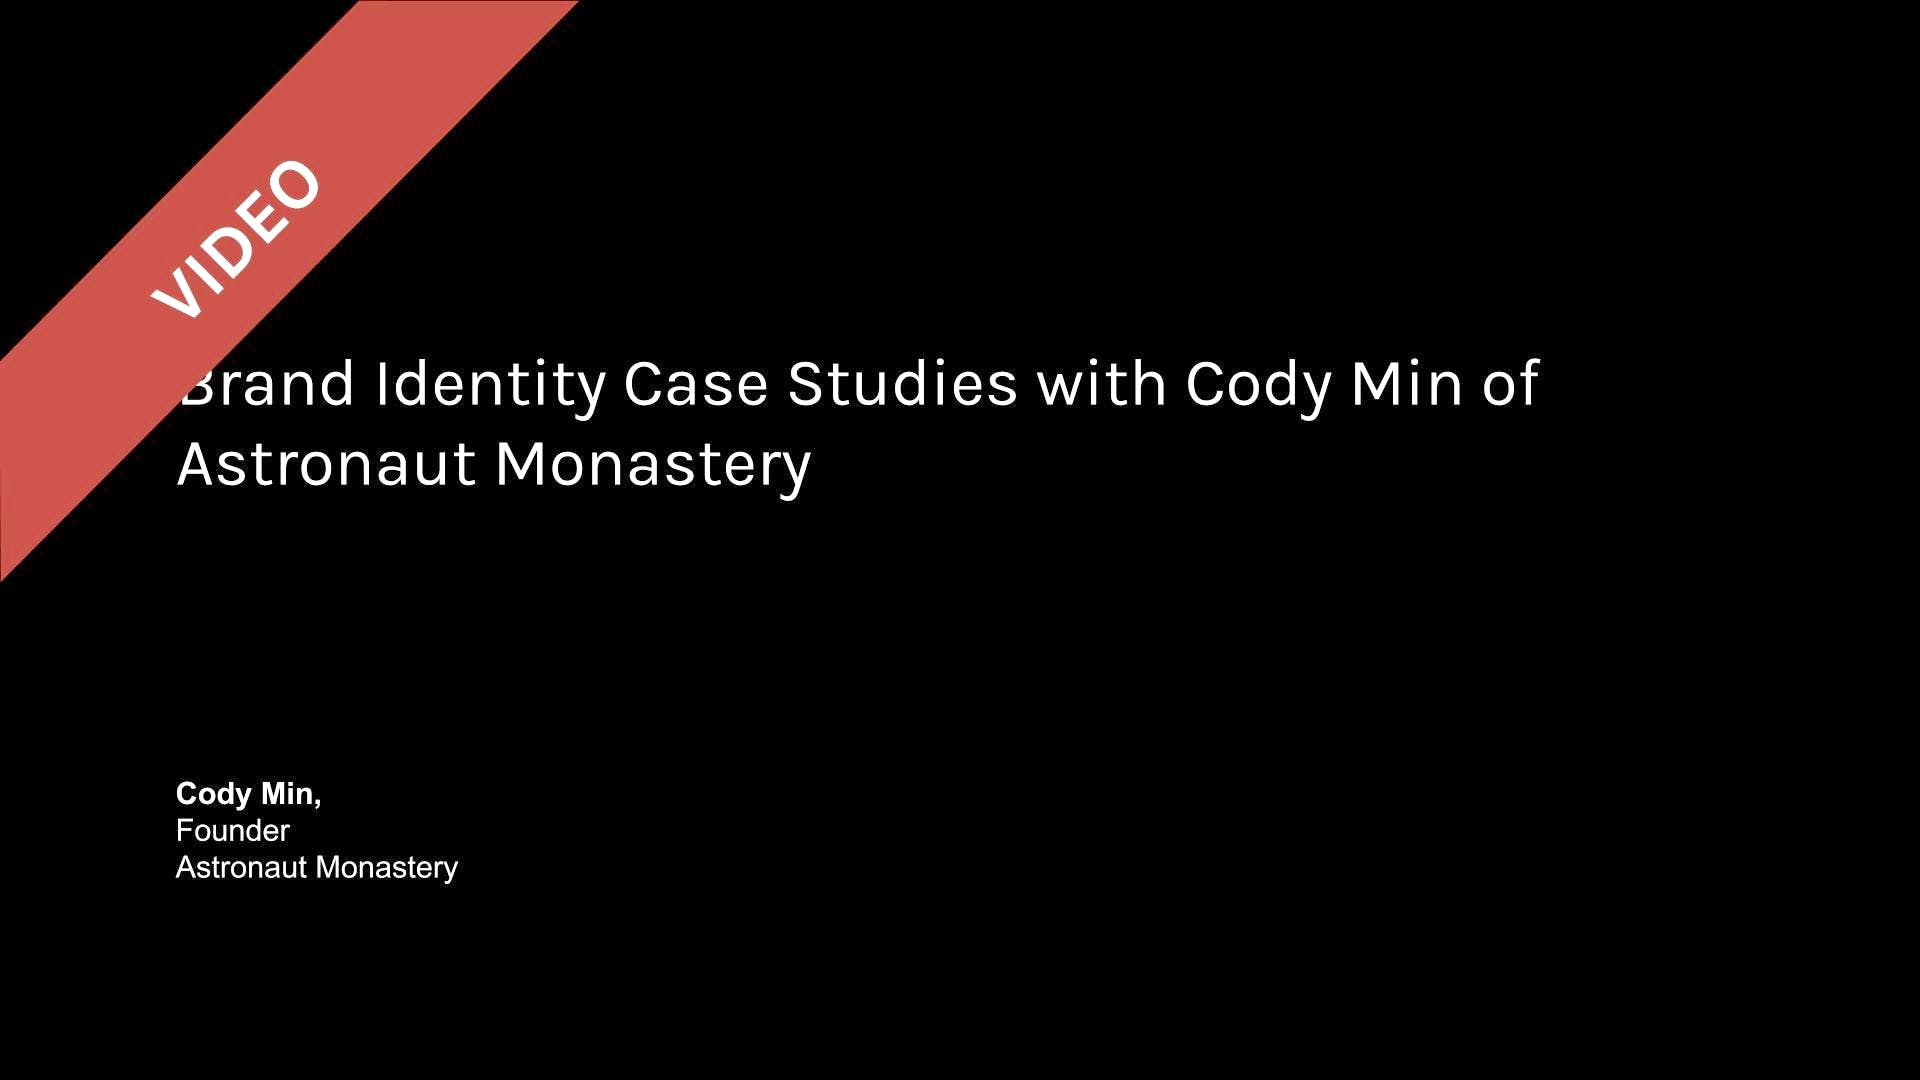 Brand Identity Case Studies with Cody Min of Astronaut Monastery